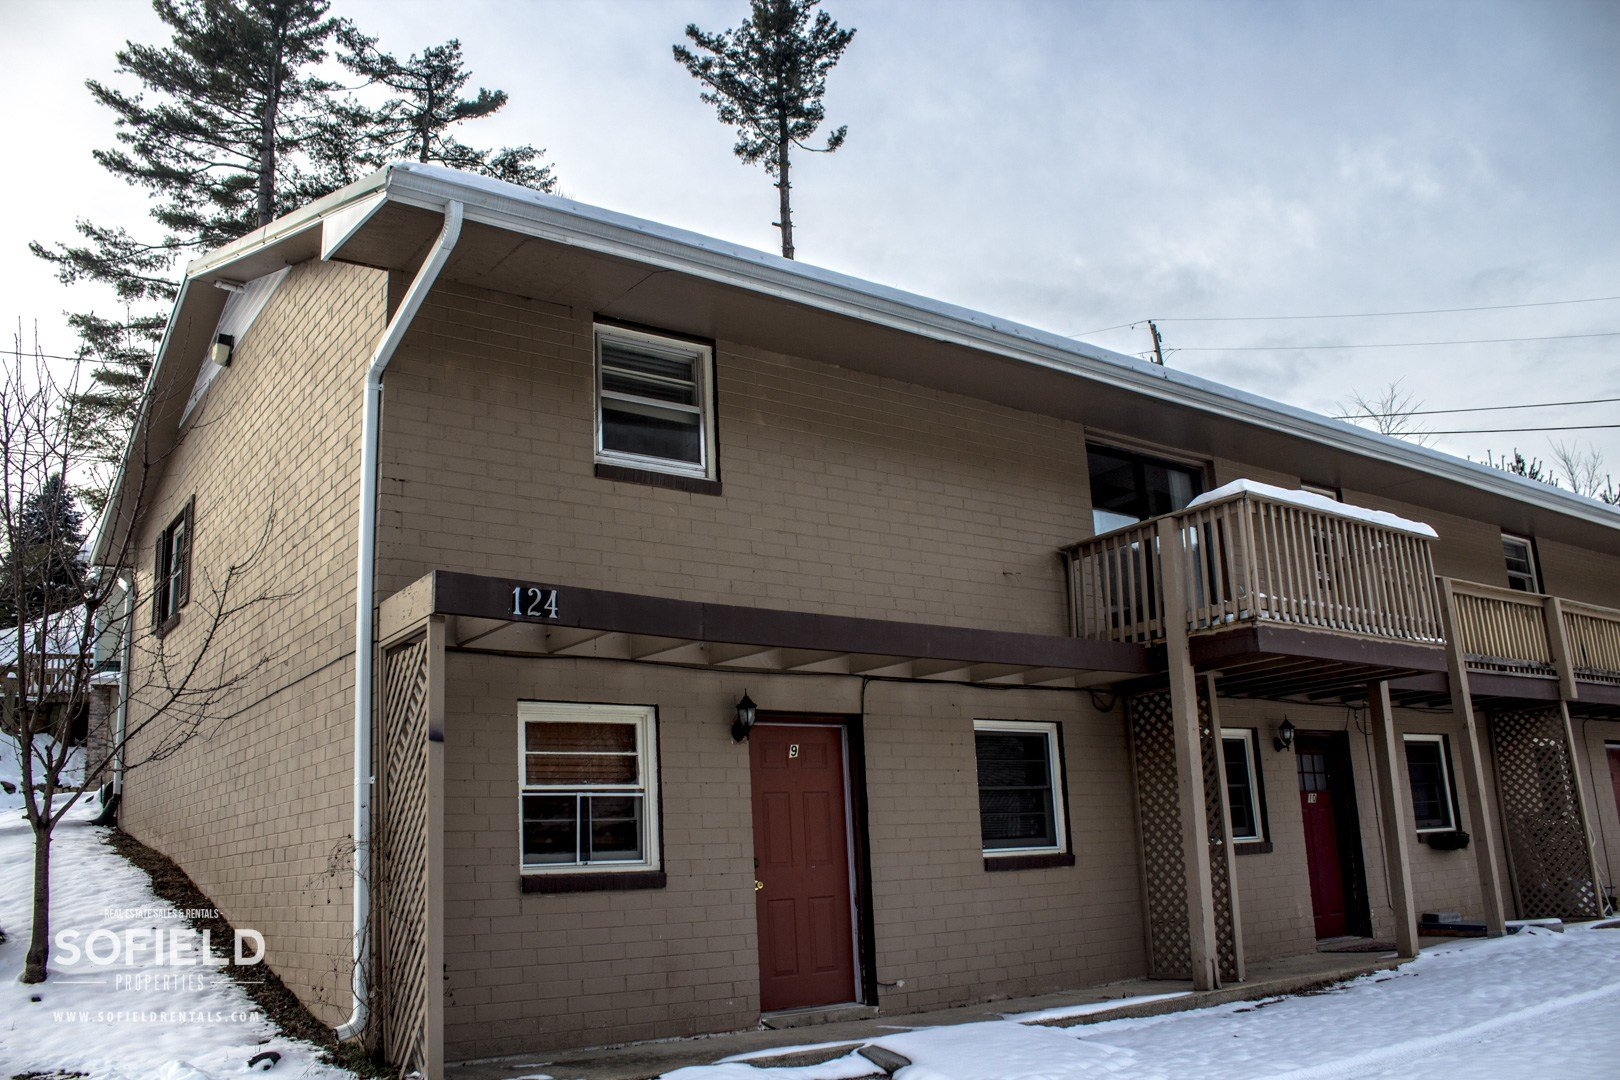 Best Woodland Hills 15 Rent Apartments Boone Nc Sofield Rentals With Pictures